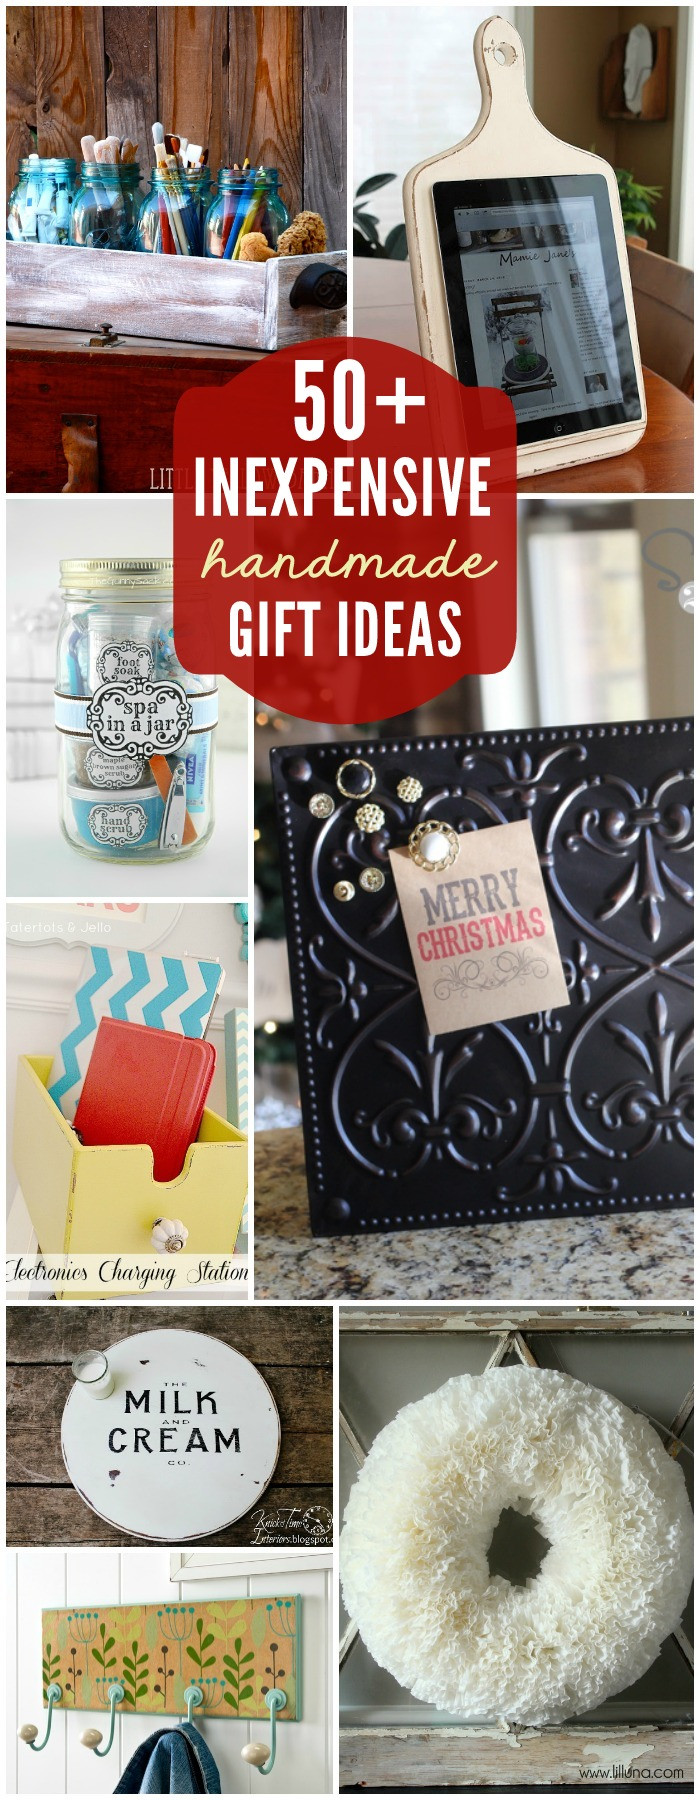 Best ideas about DIY Christmas Present Ideas . Save or Pin 75 Gift Ideas under $5 Now.